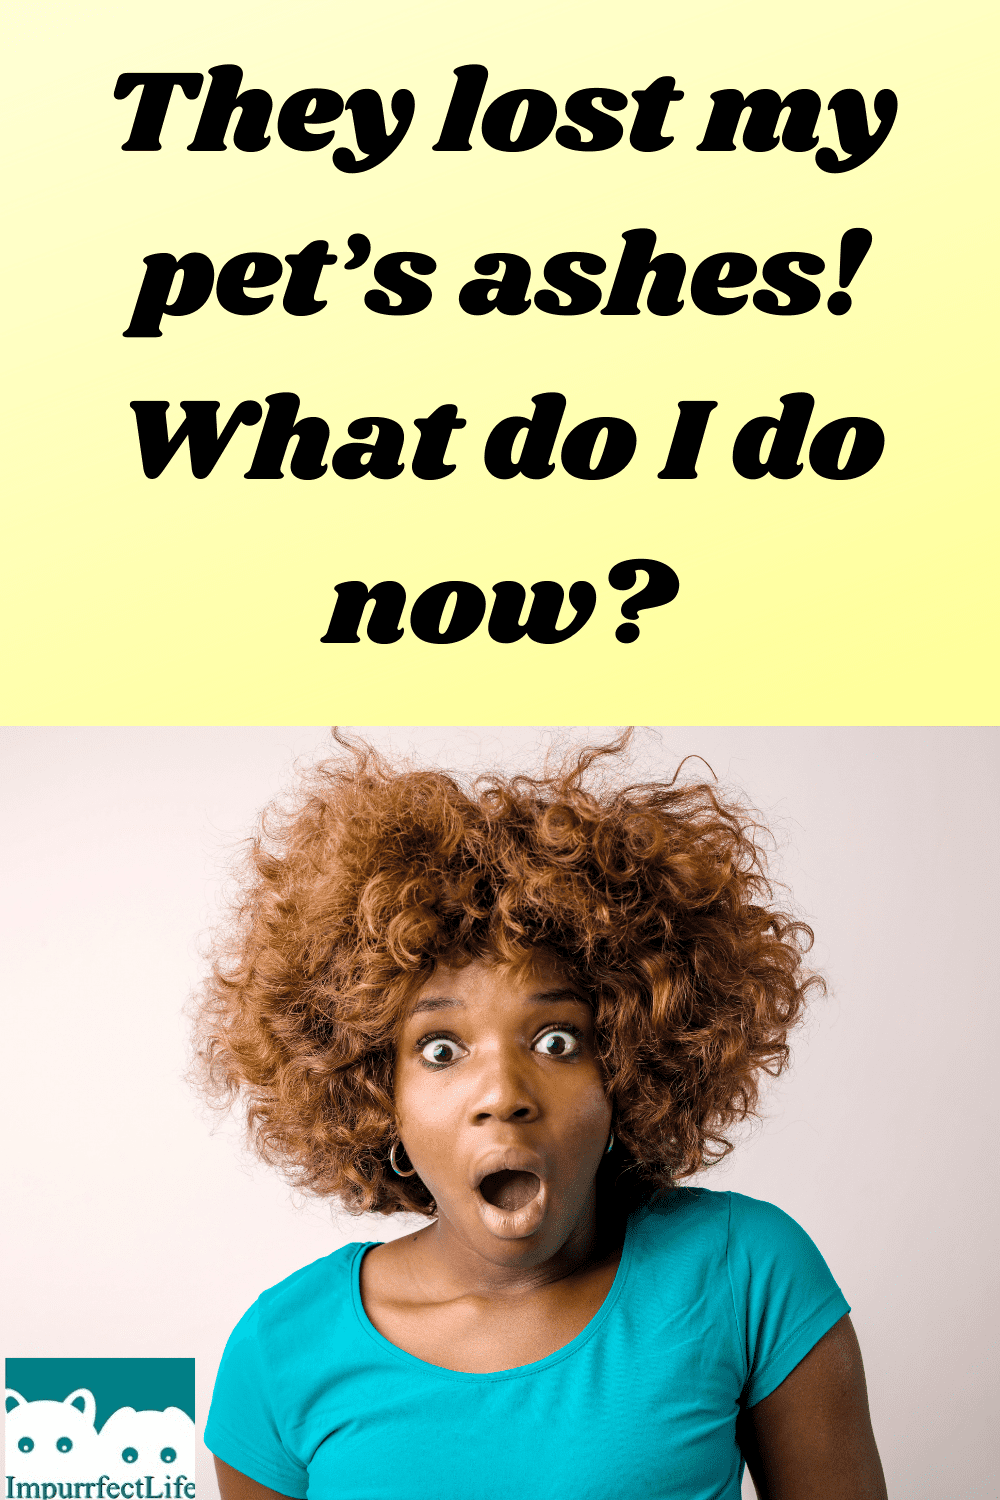 lost pets ashes #impurrfectlife #pets #grief #cremation #ashes